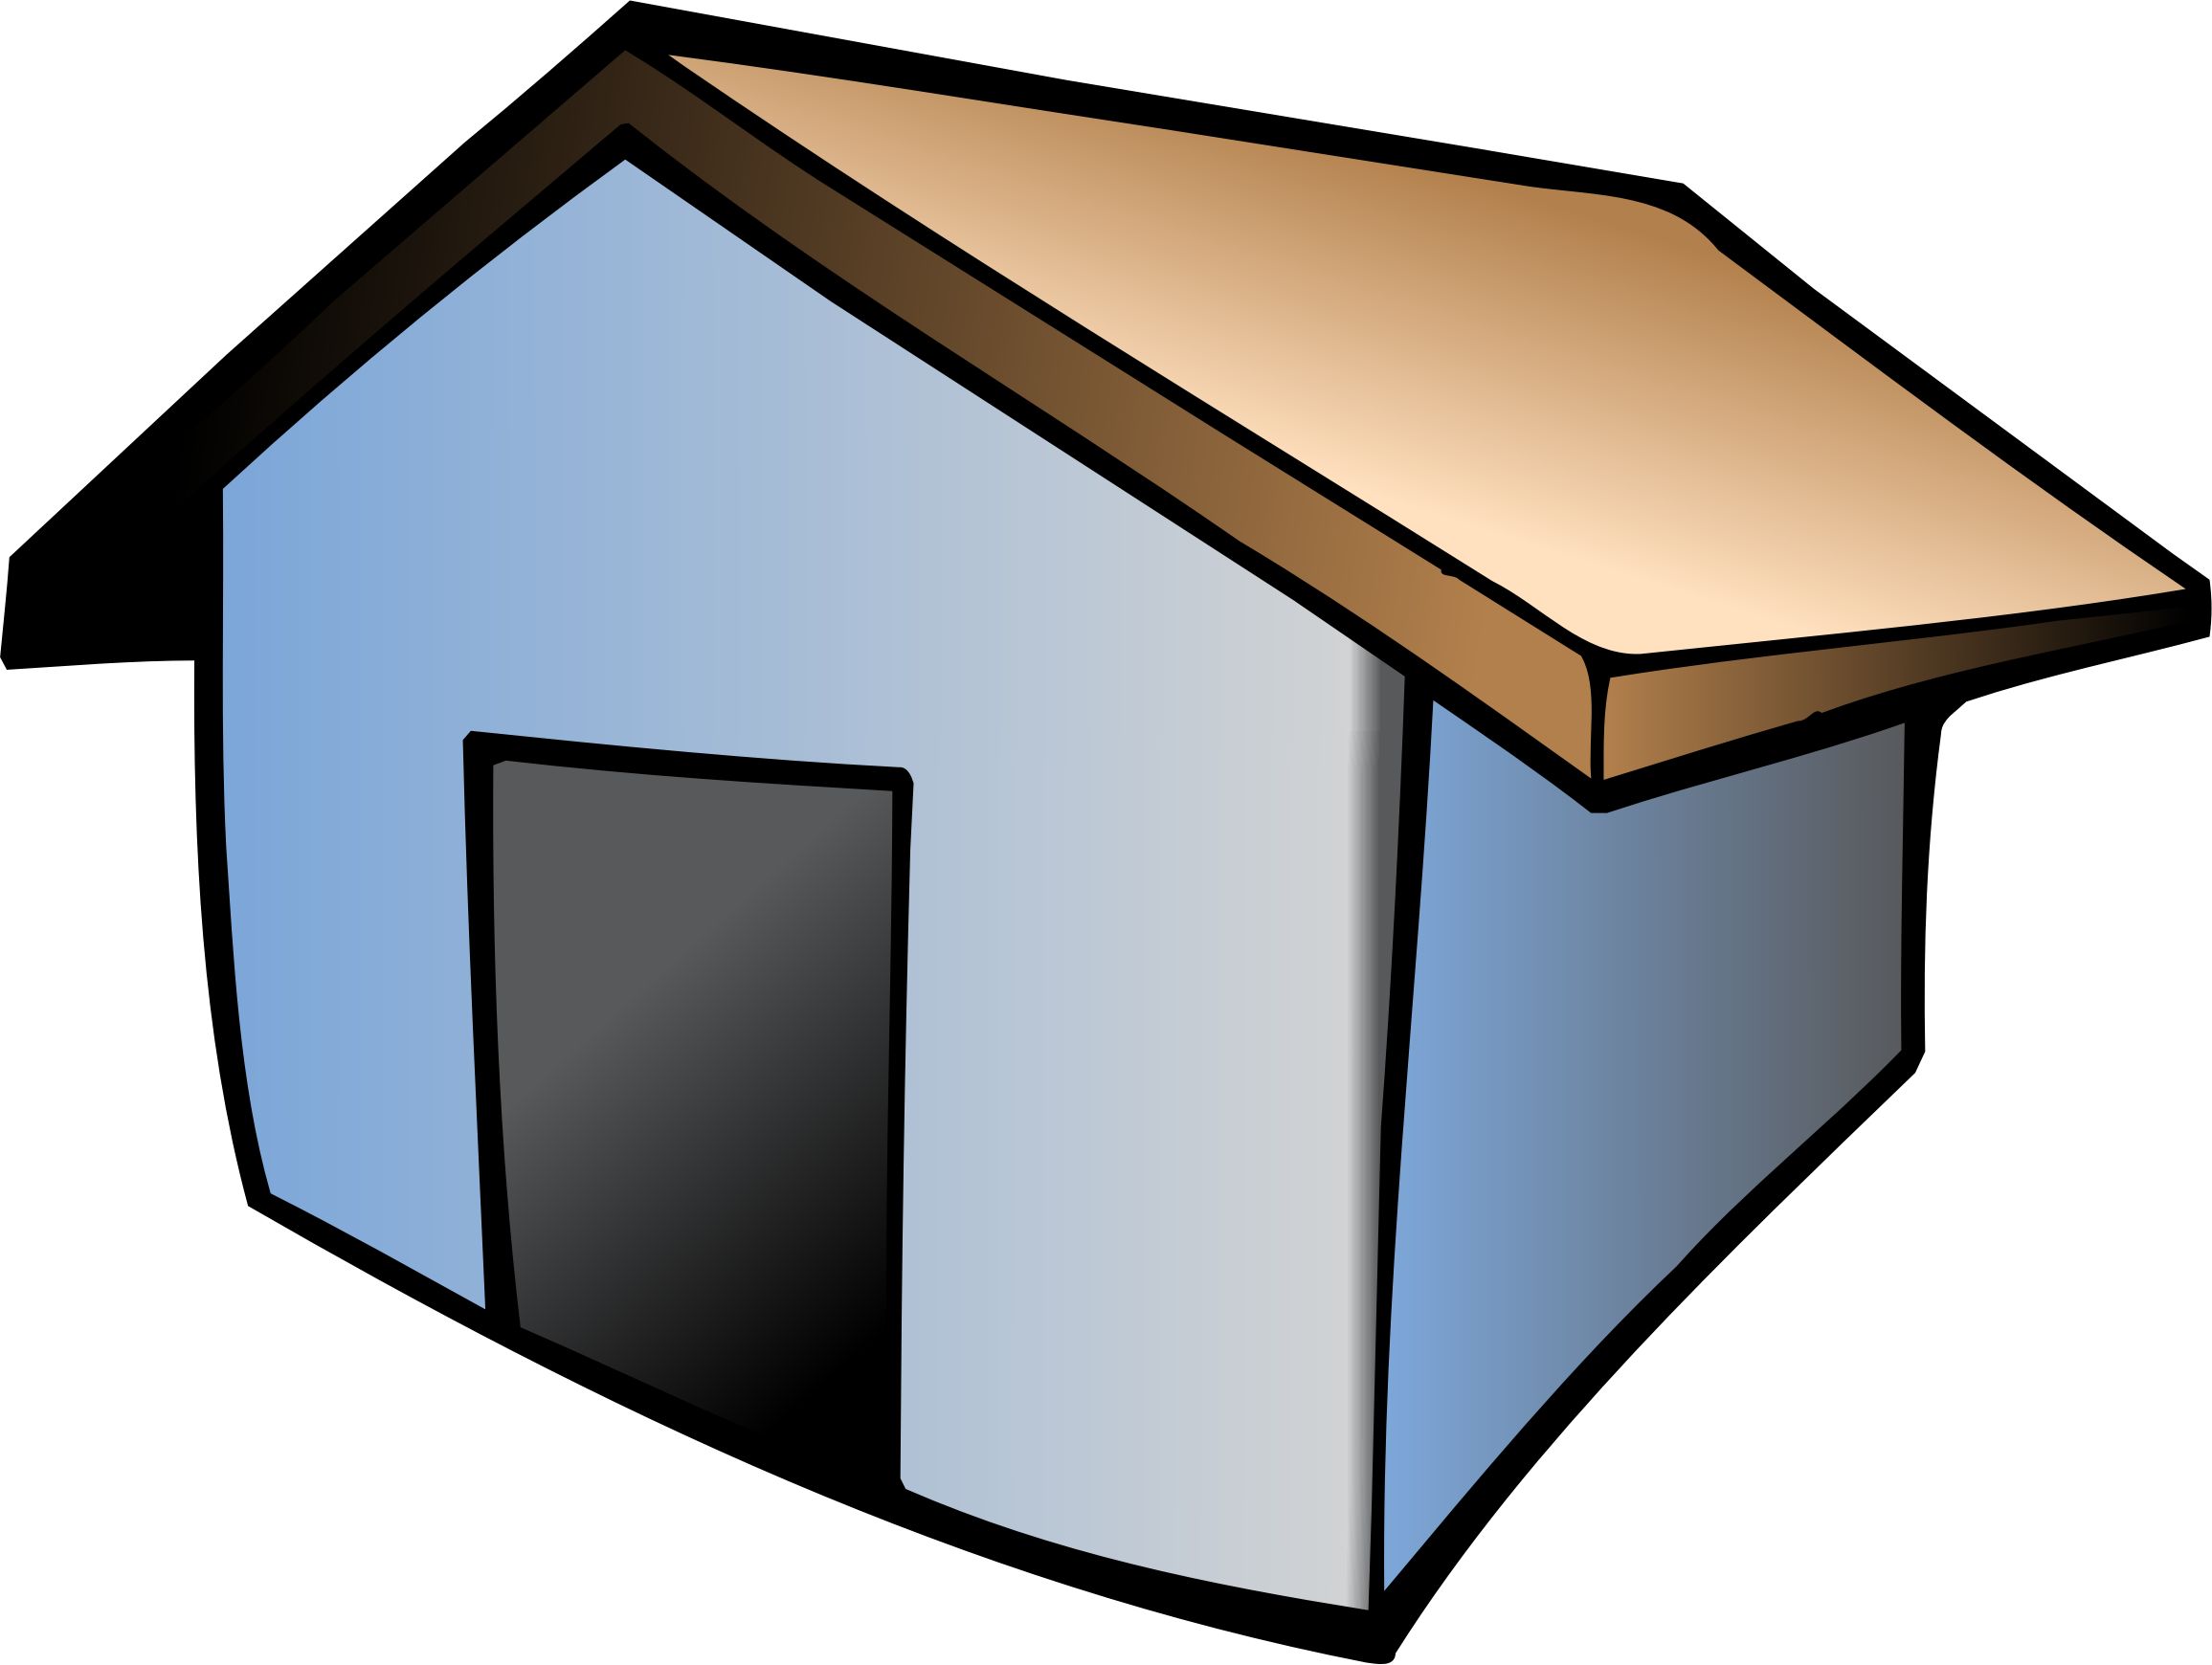 Doghouse clipart hut house. Raseone home icon big